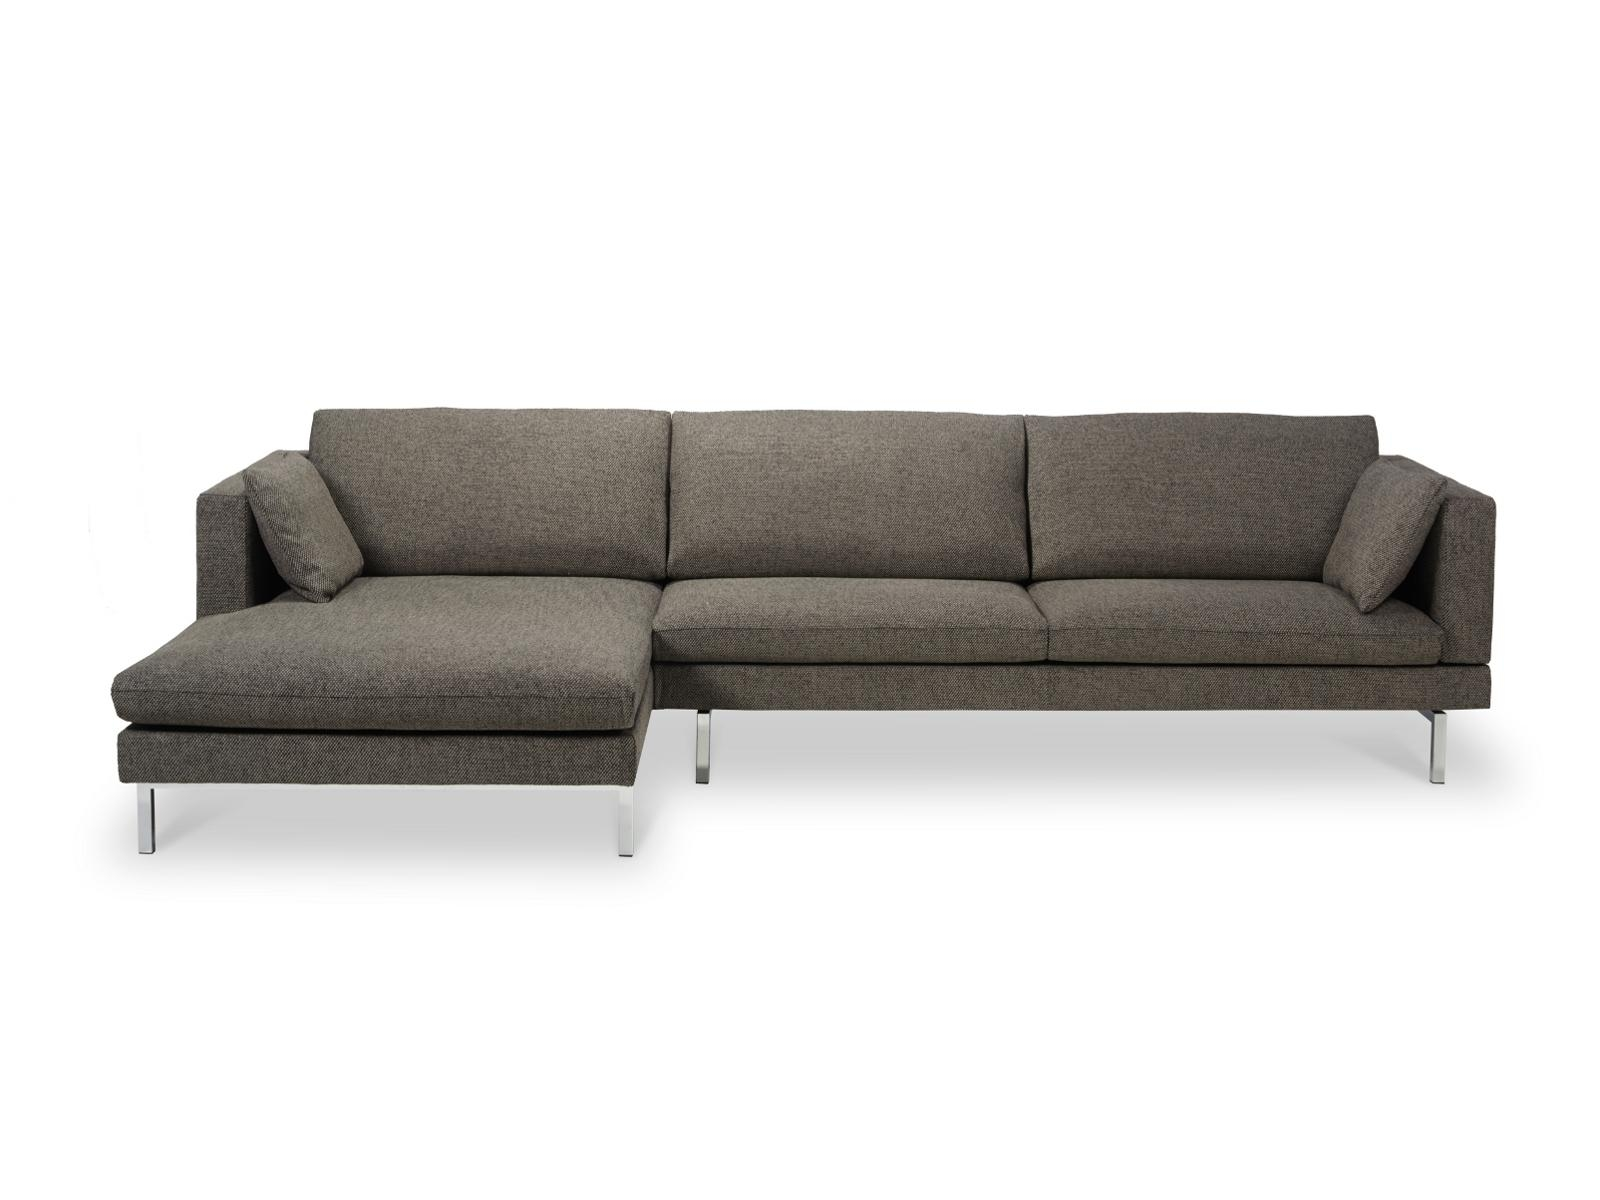 Shiva | Leather Sofa Shiva Collectionjori Design Jean Pierre In Sofas With Chaise Longue (Image 14 of 20)